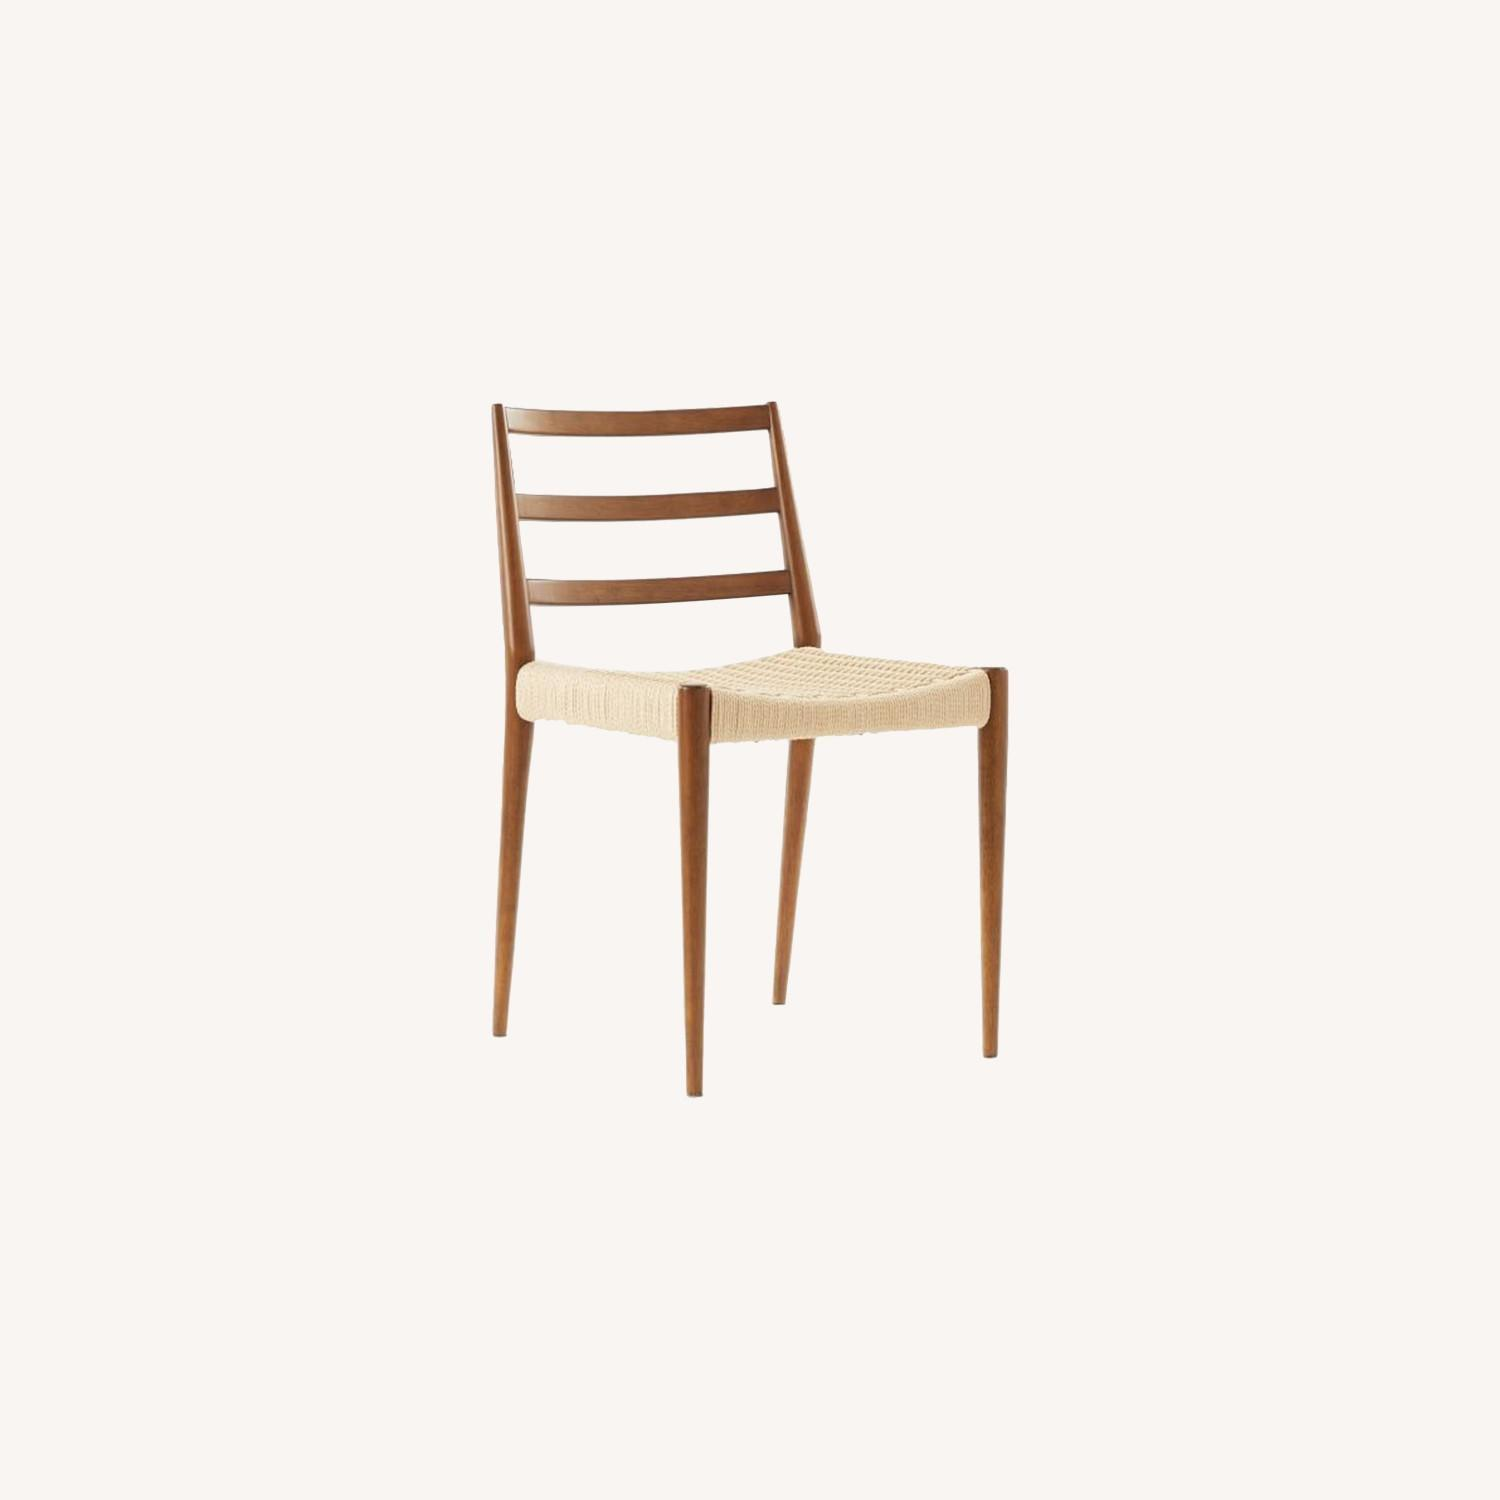 West Elm Holland Dining Chair Walnut/Natural - image-0